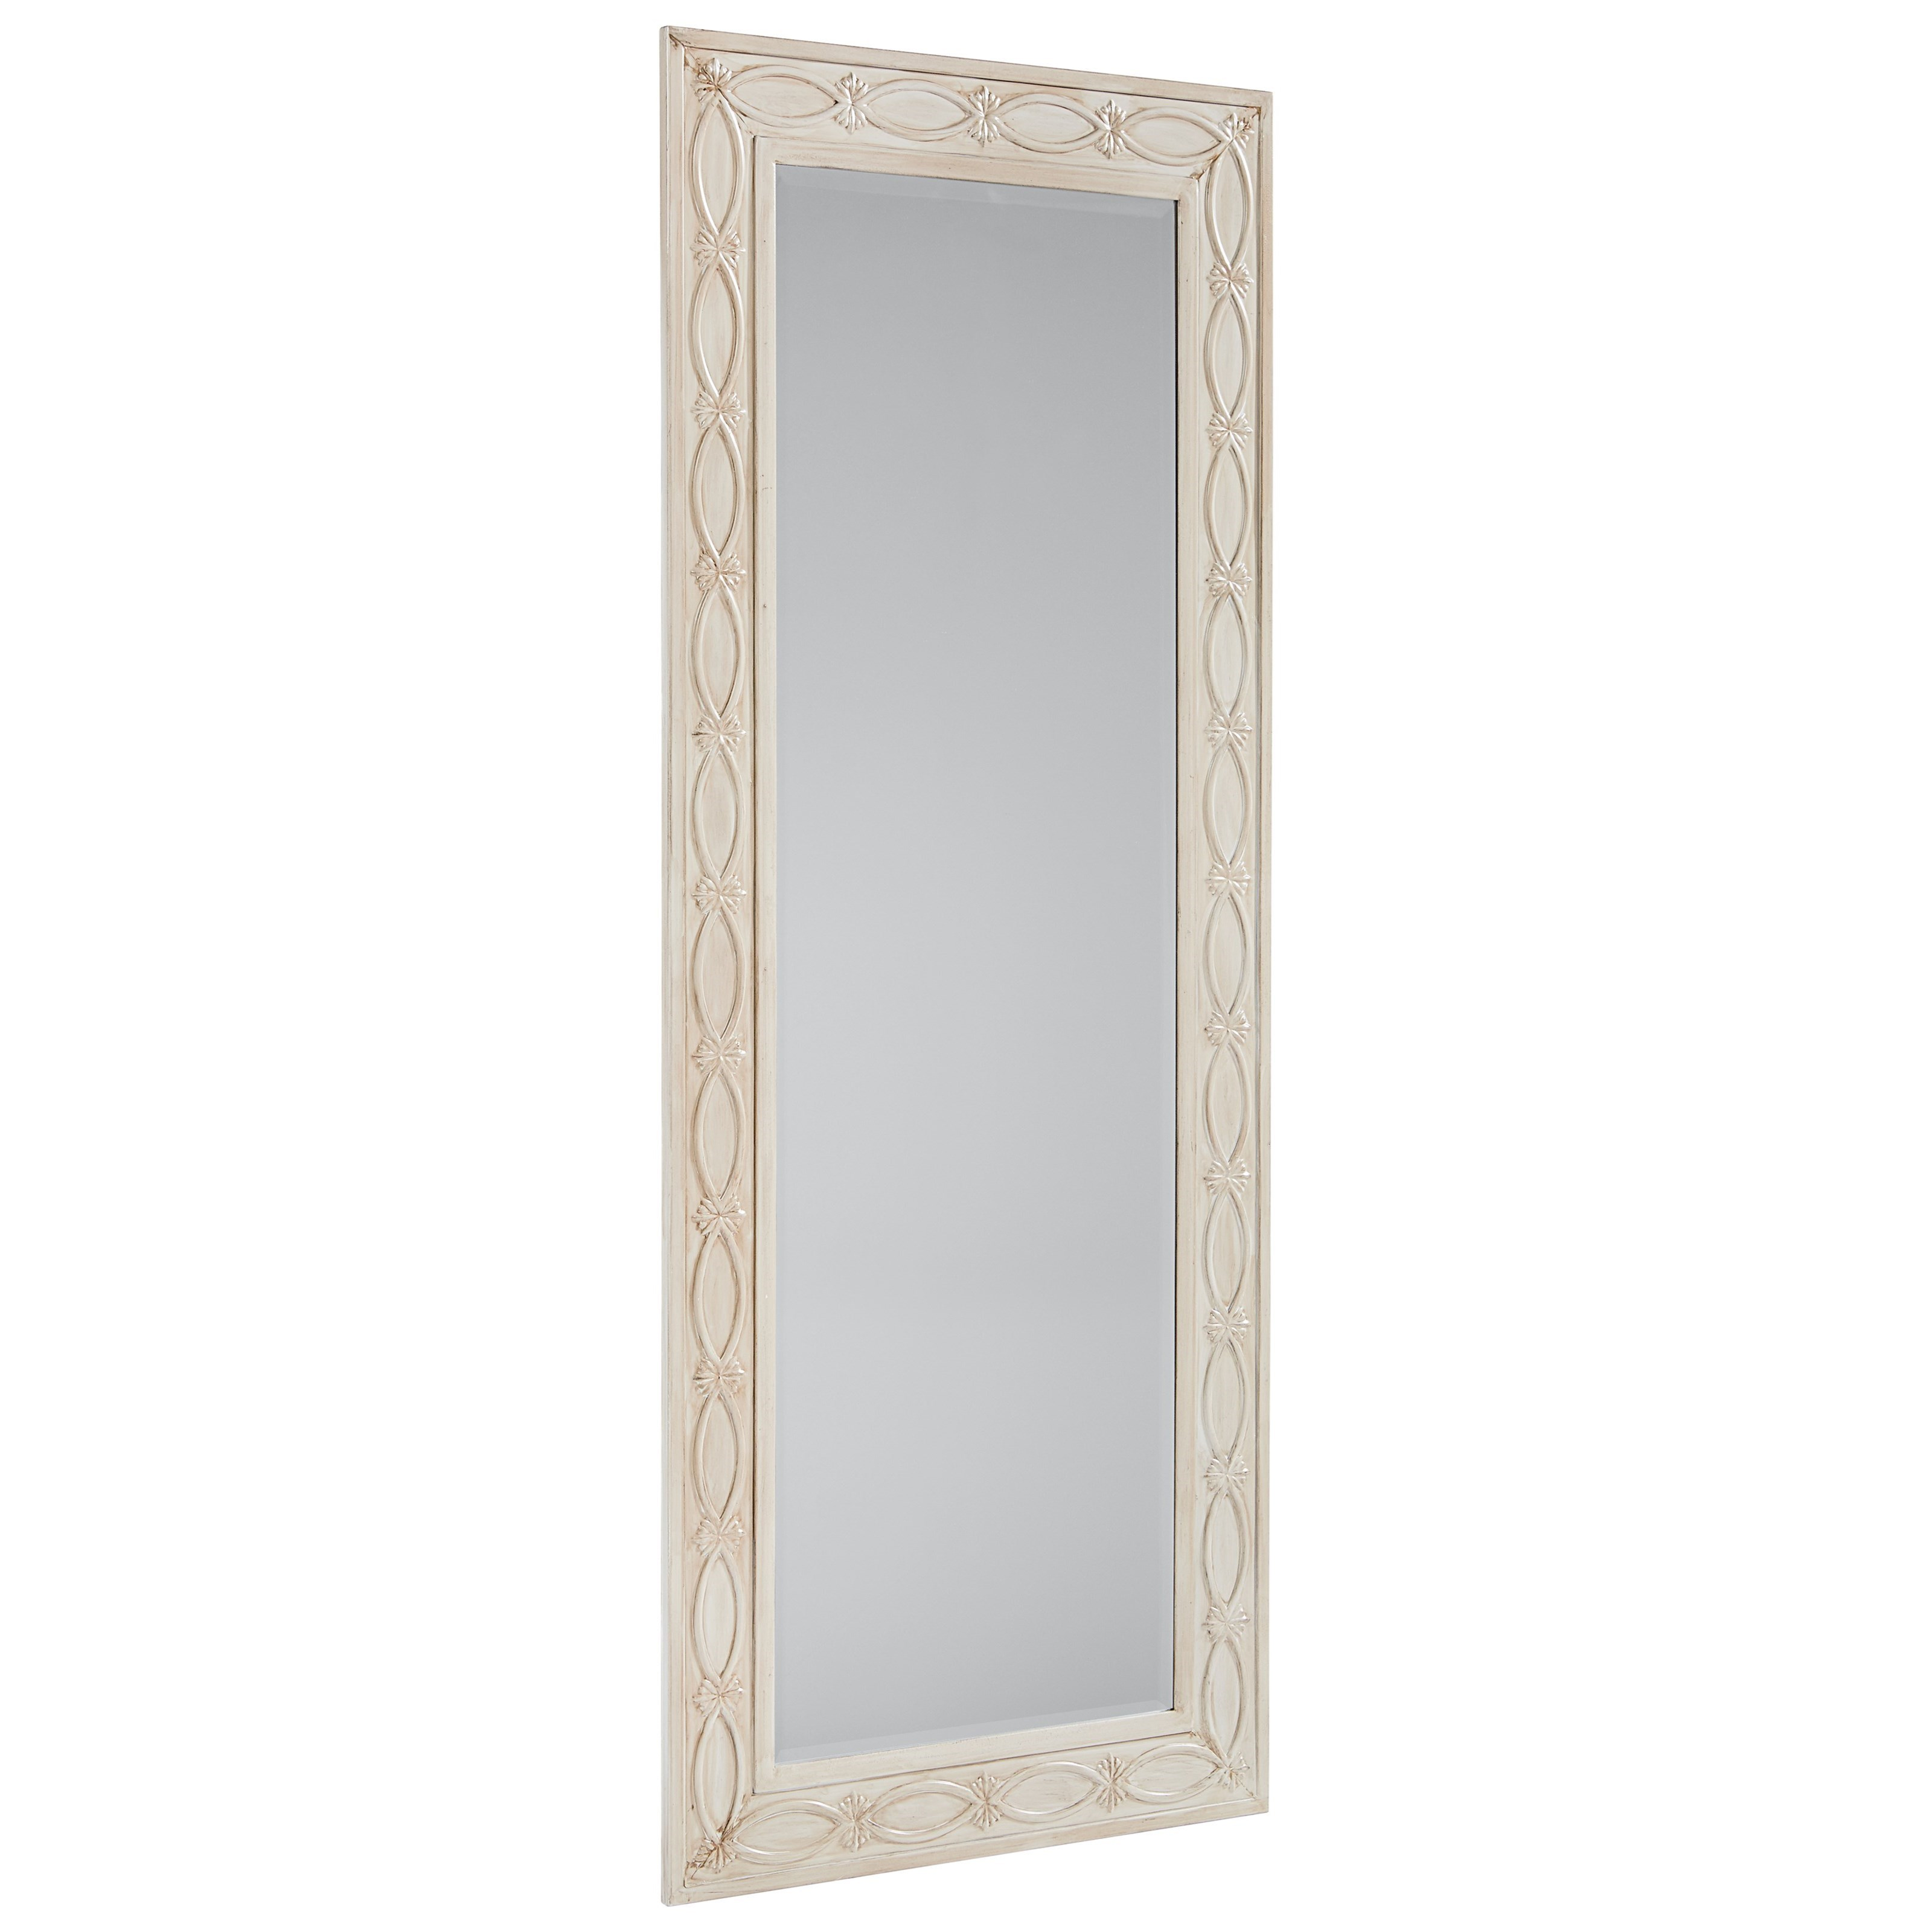 Magnolia Home by Joanna Gaines Accent Elements Tall Zinc Floor Mirror - Item Number: 8030218O